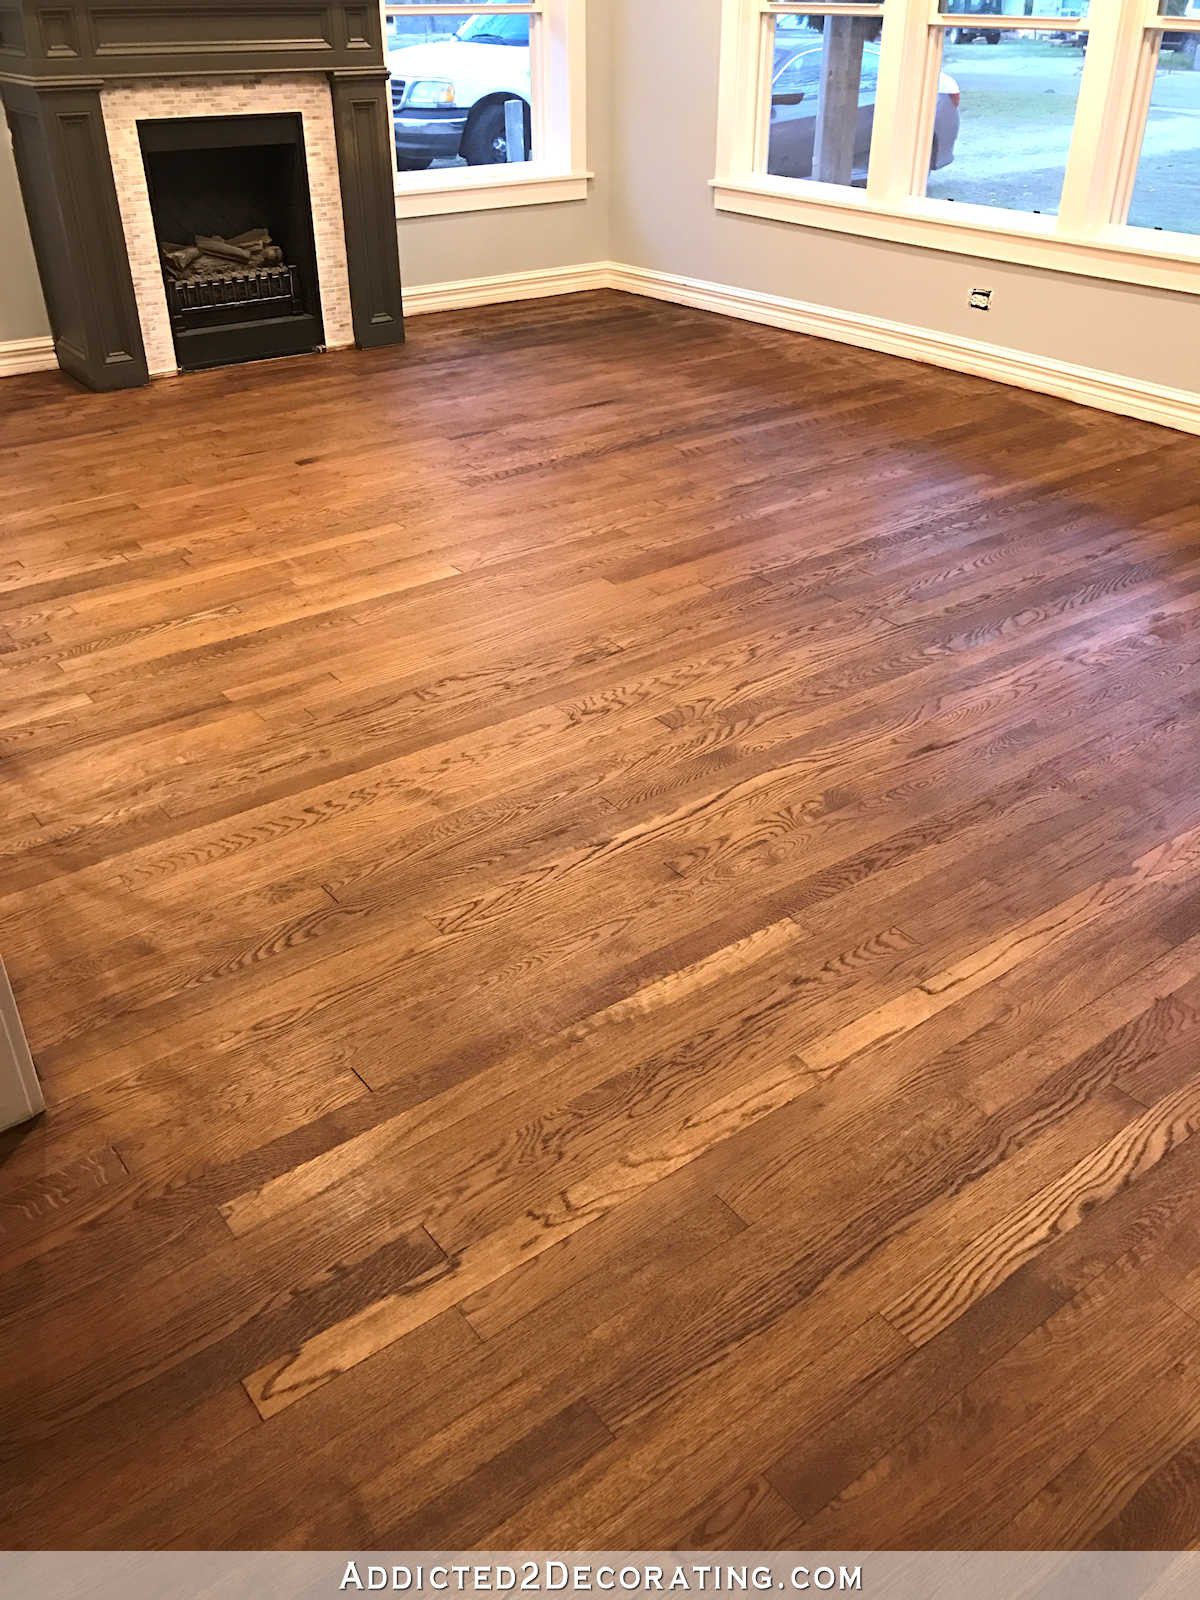 most popular hardwood floor colors 2017 of adventures in staining my red oak hardwood floors products process with staining red oak hardwood floors 8a living room and entryway